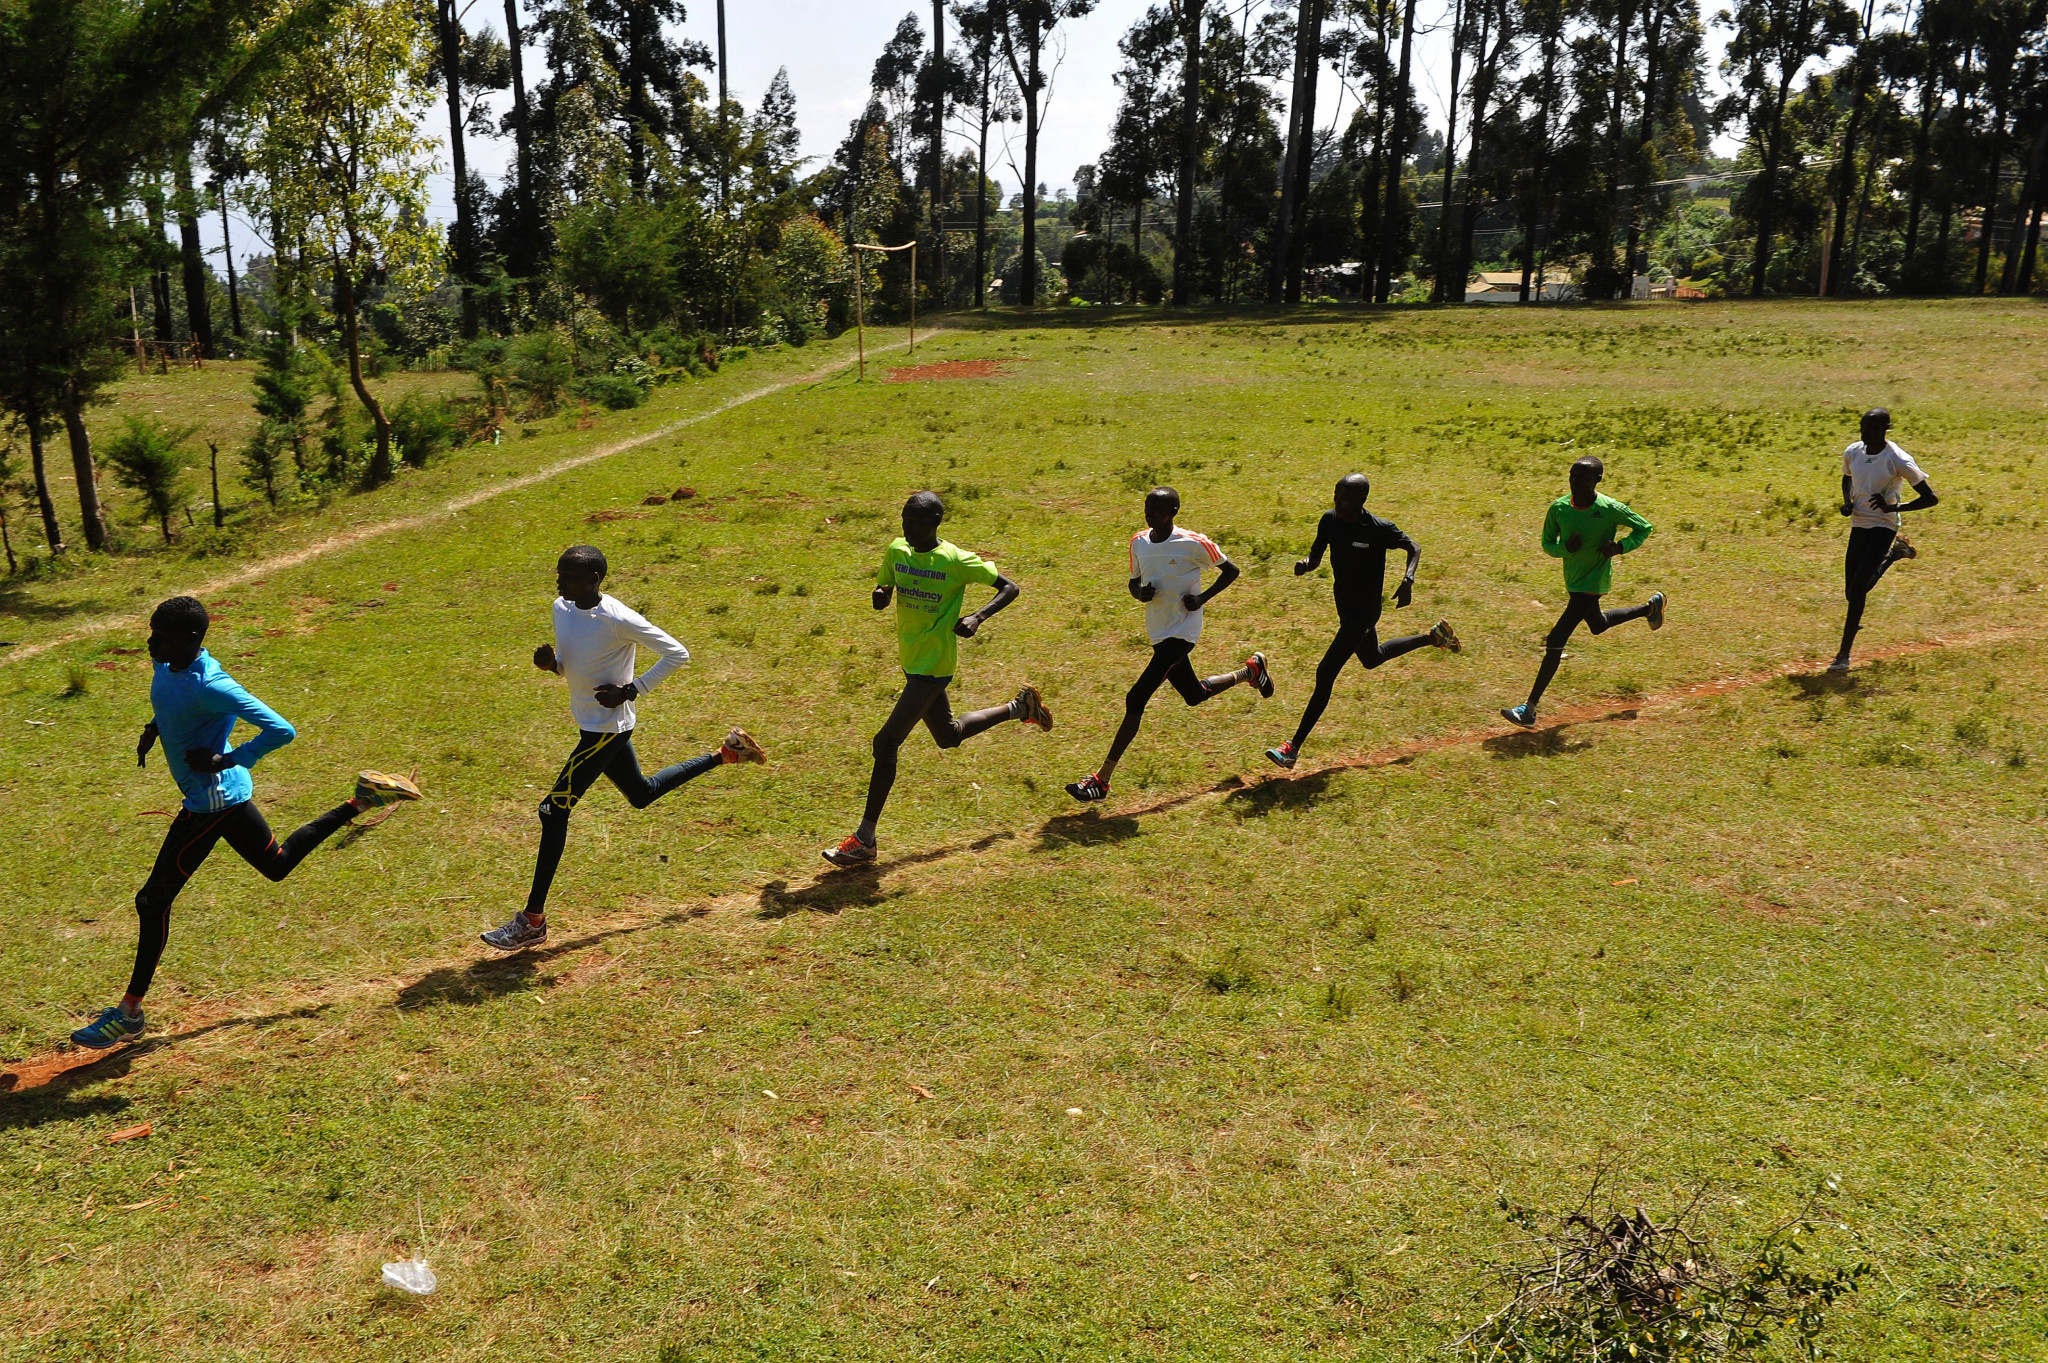 Athletes in the region of Iten were arrested for ignoring Government rules ©Getty Images